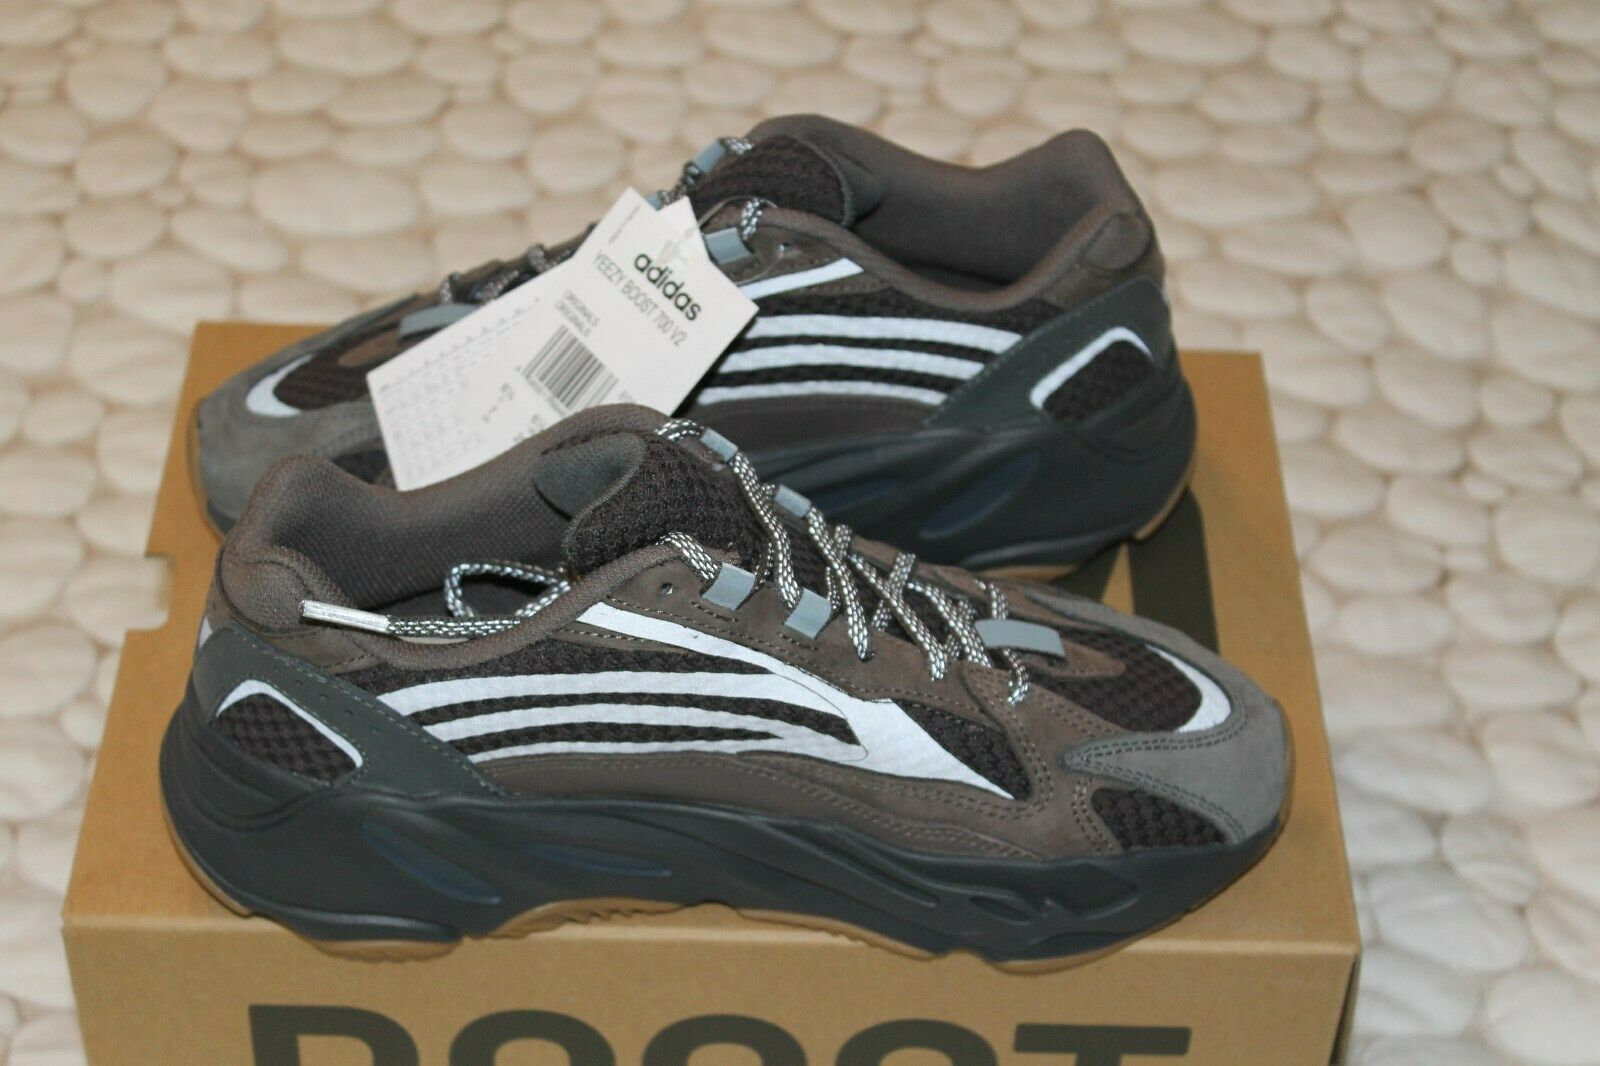 bcee83584ee Adidas Yeezy 700 V2 Geode EG6860 New Size 7 100% authentic Boost ...